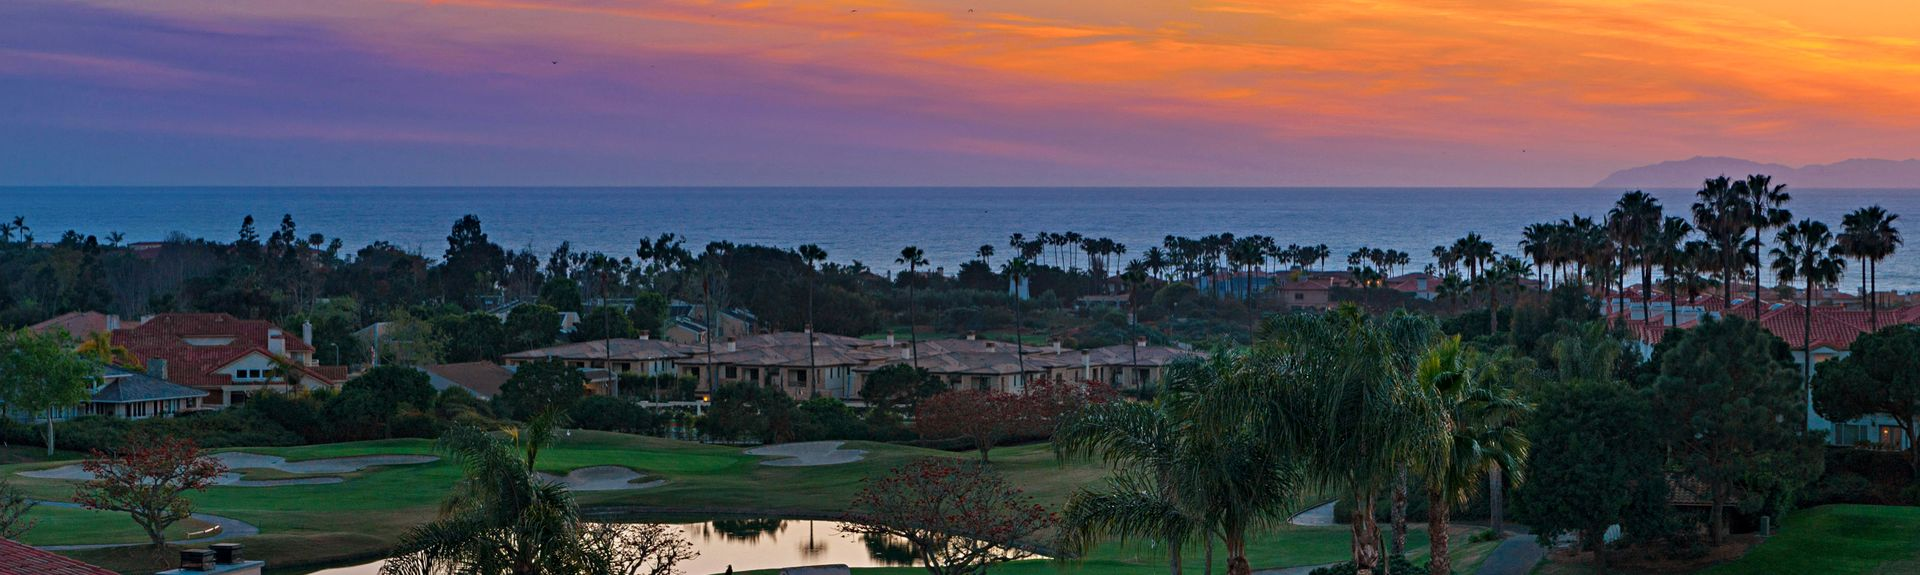 Newport Beach Country Club, Newport Beach, CA, USA